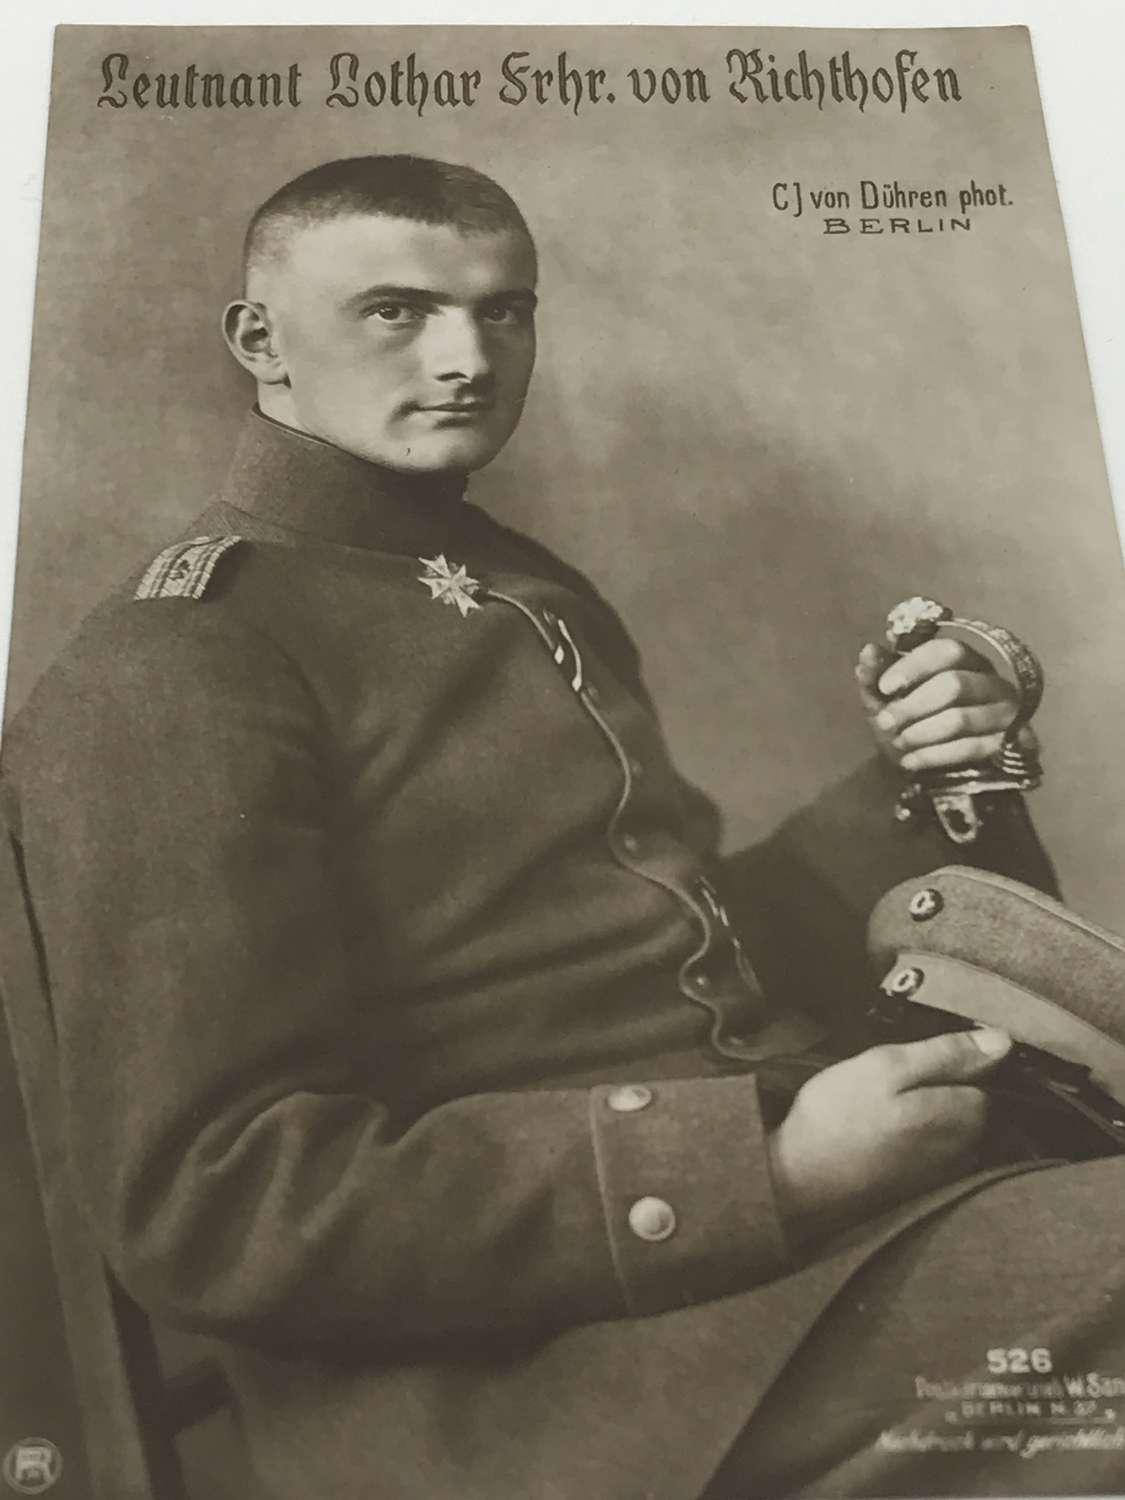 Lother Von Richthofen Sanke card number 526